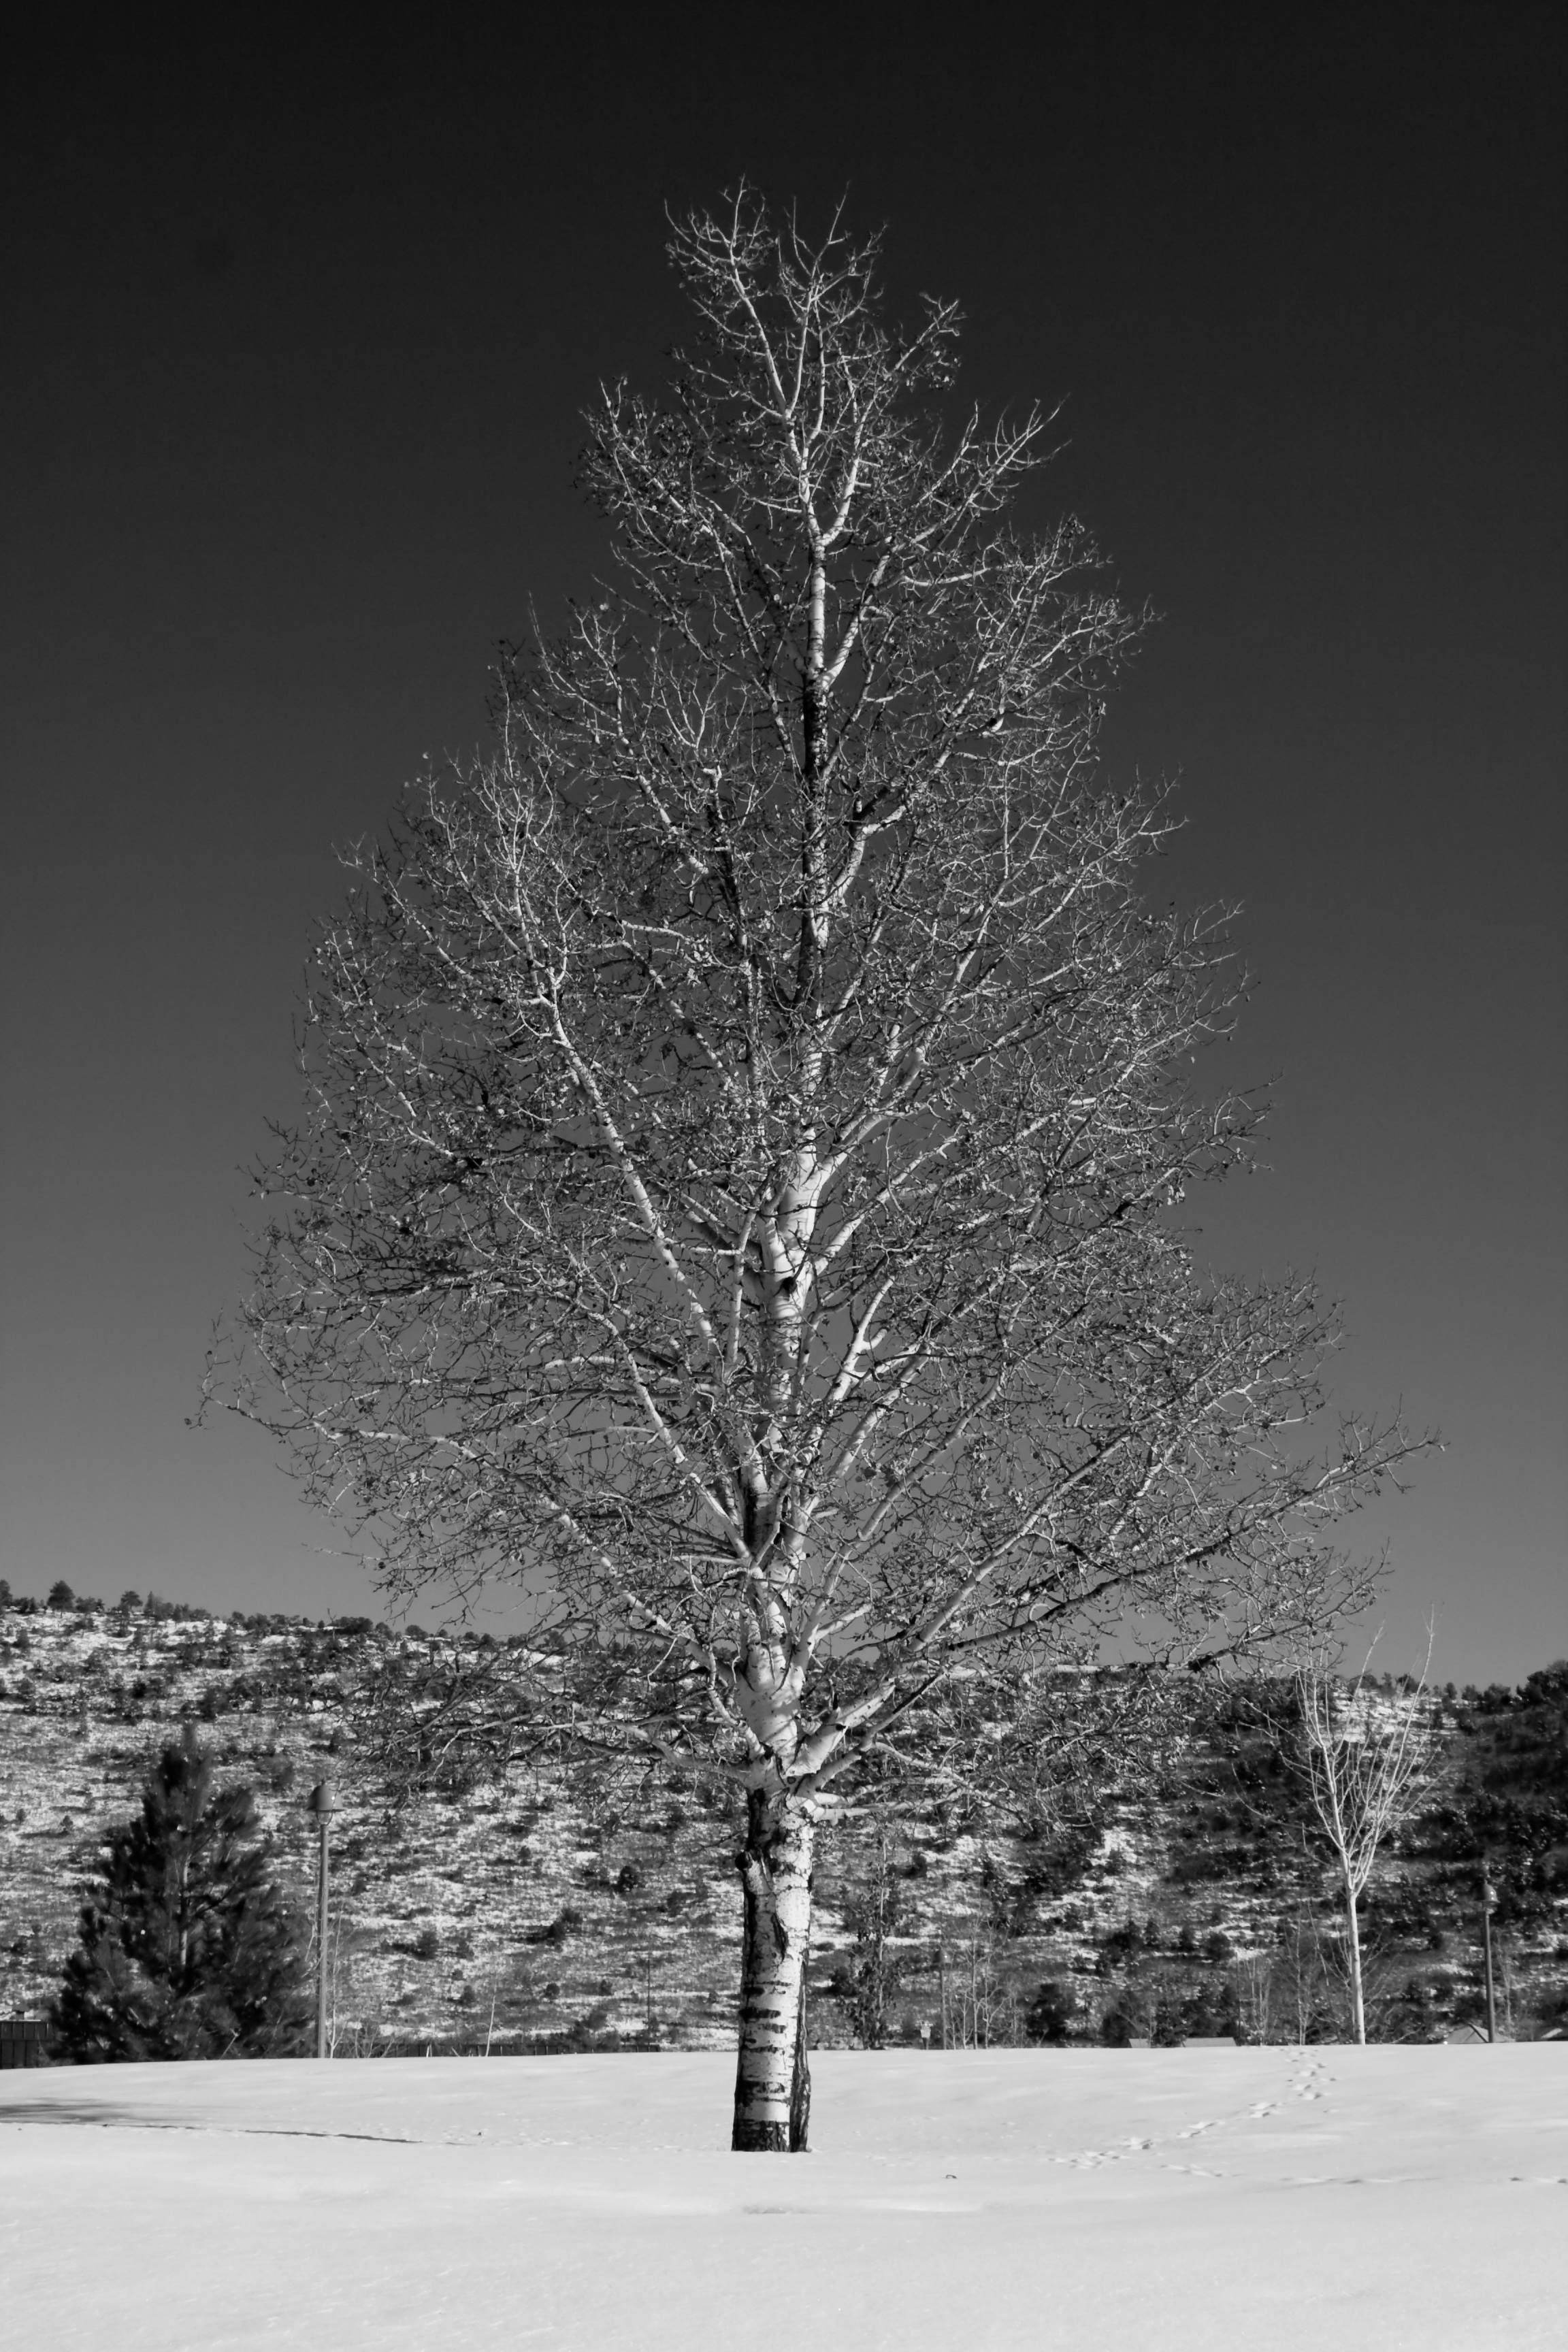 Winter Tree, Cold, Field, Ground, Isolated, HQ Photo